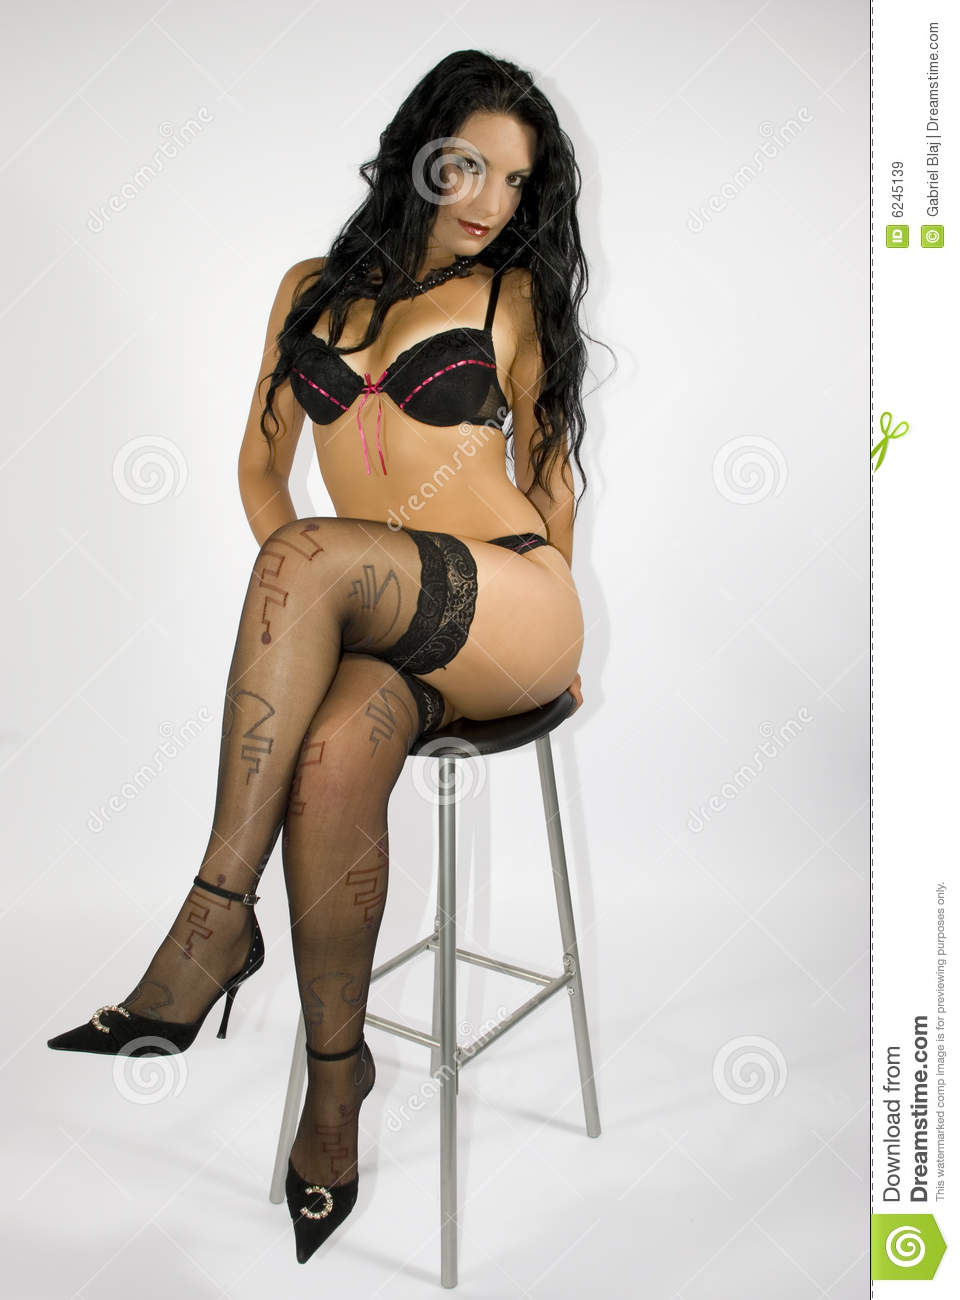 Atractive Woman On Chair Royalty Free Stock Images